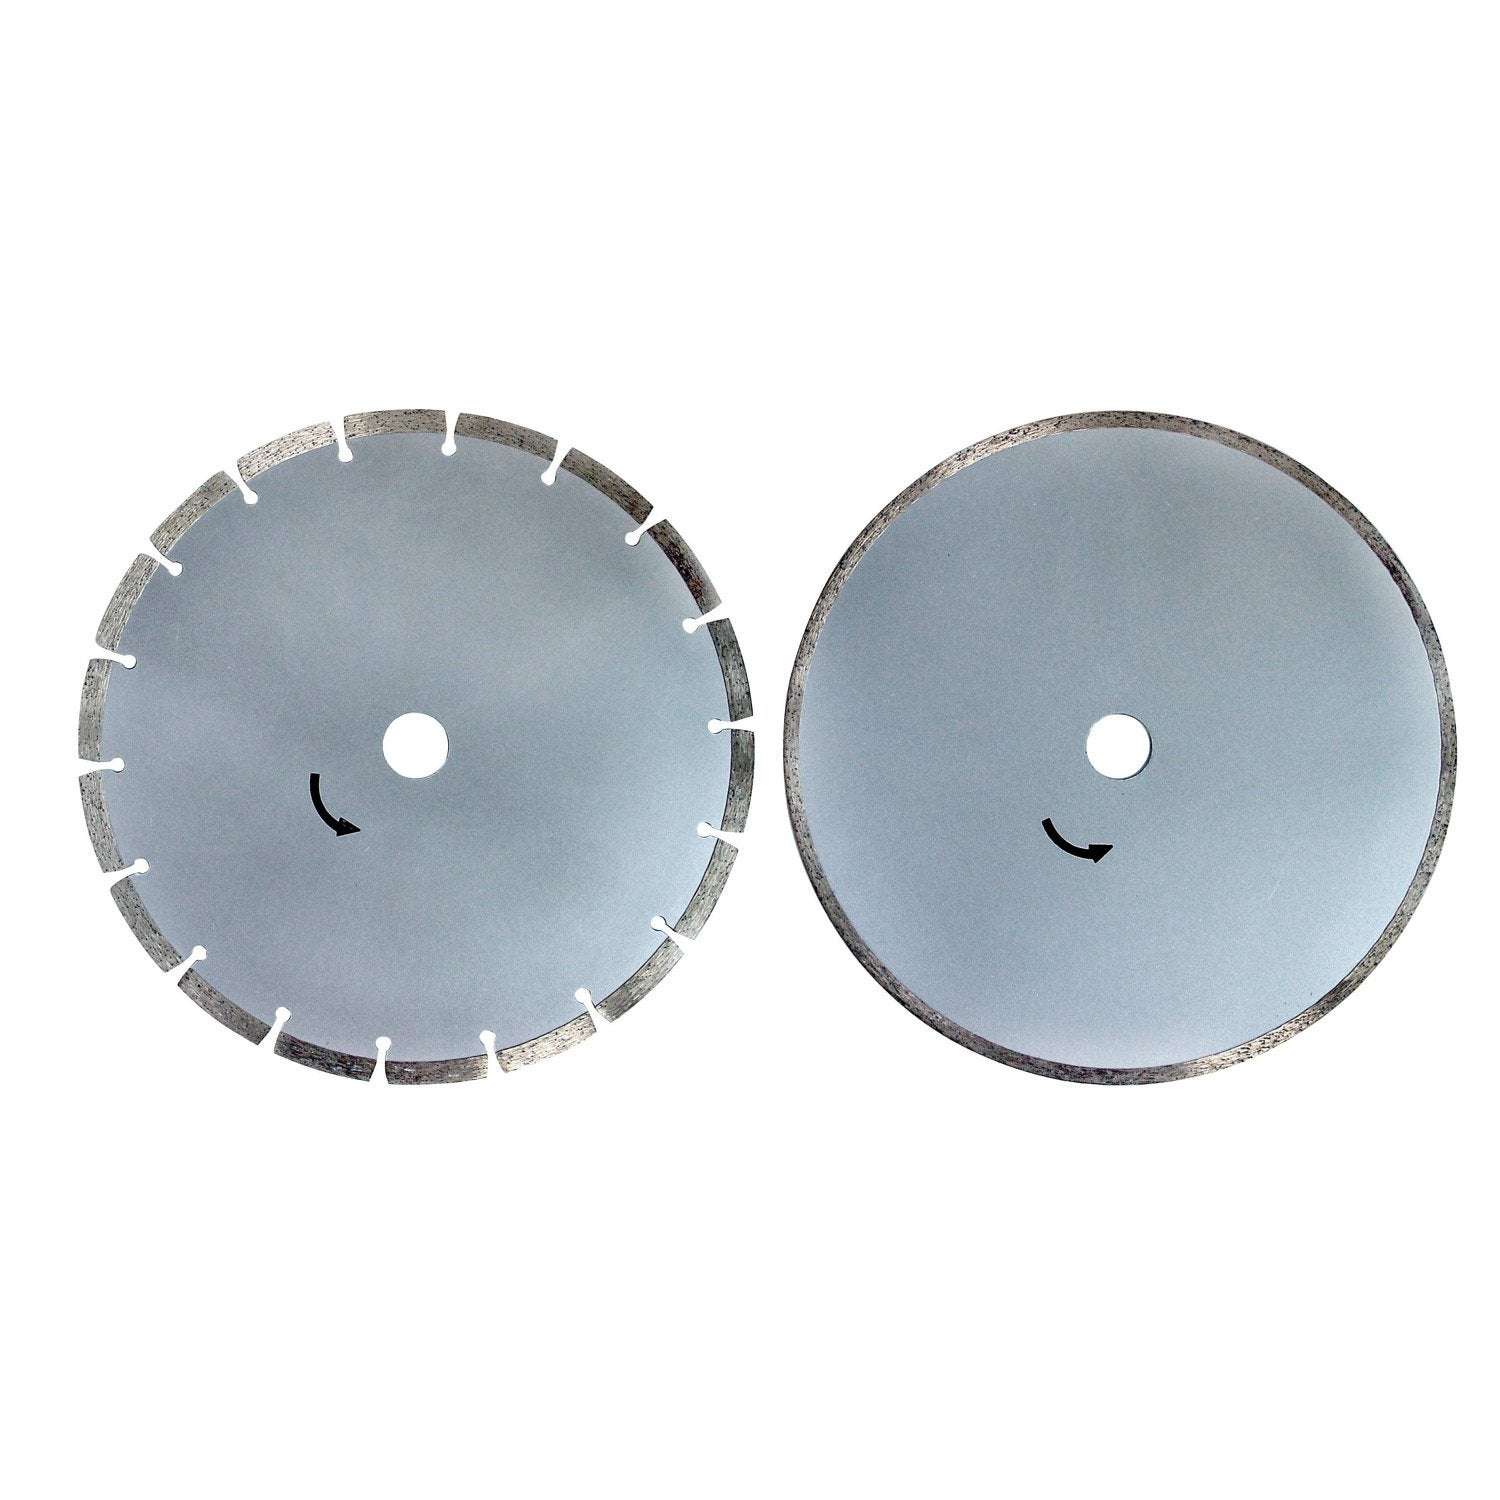 lot de 2 disques diamant pour mat riaux de construction mm leroy merlin. Black Bedroom Furniture Sets. Home Design Ideas